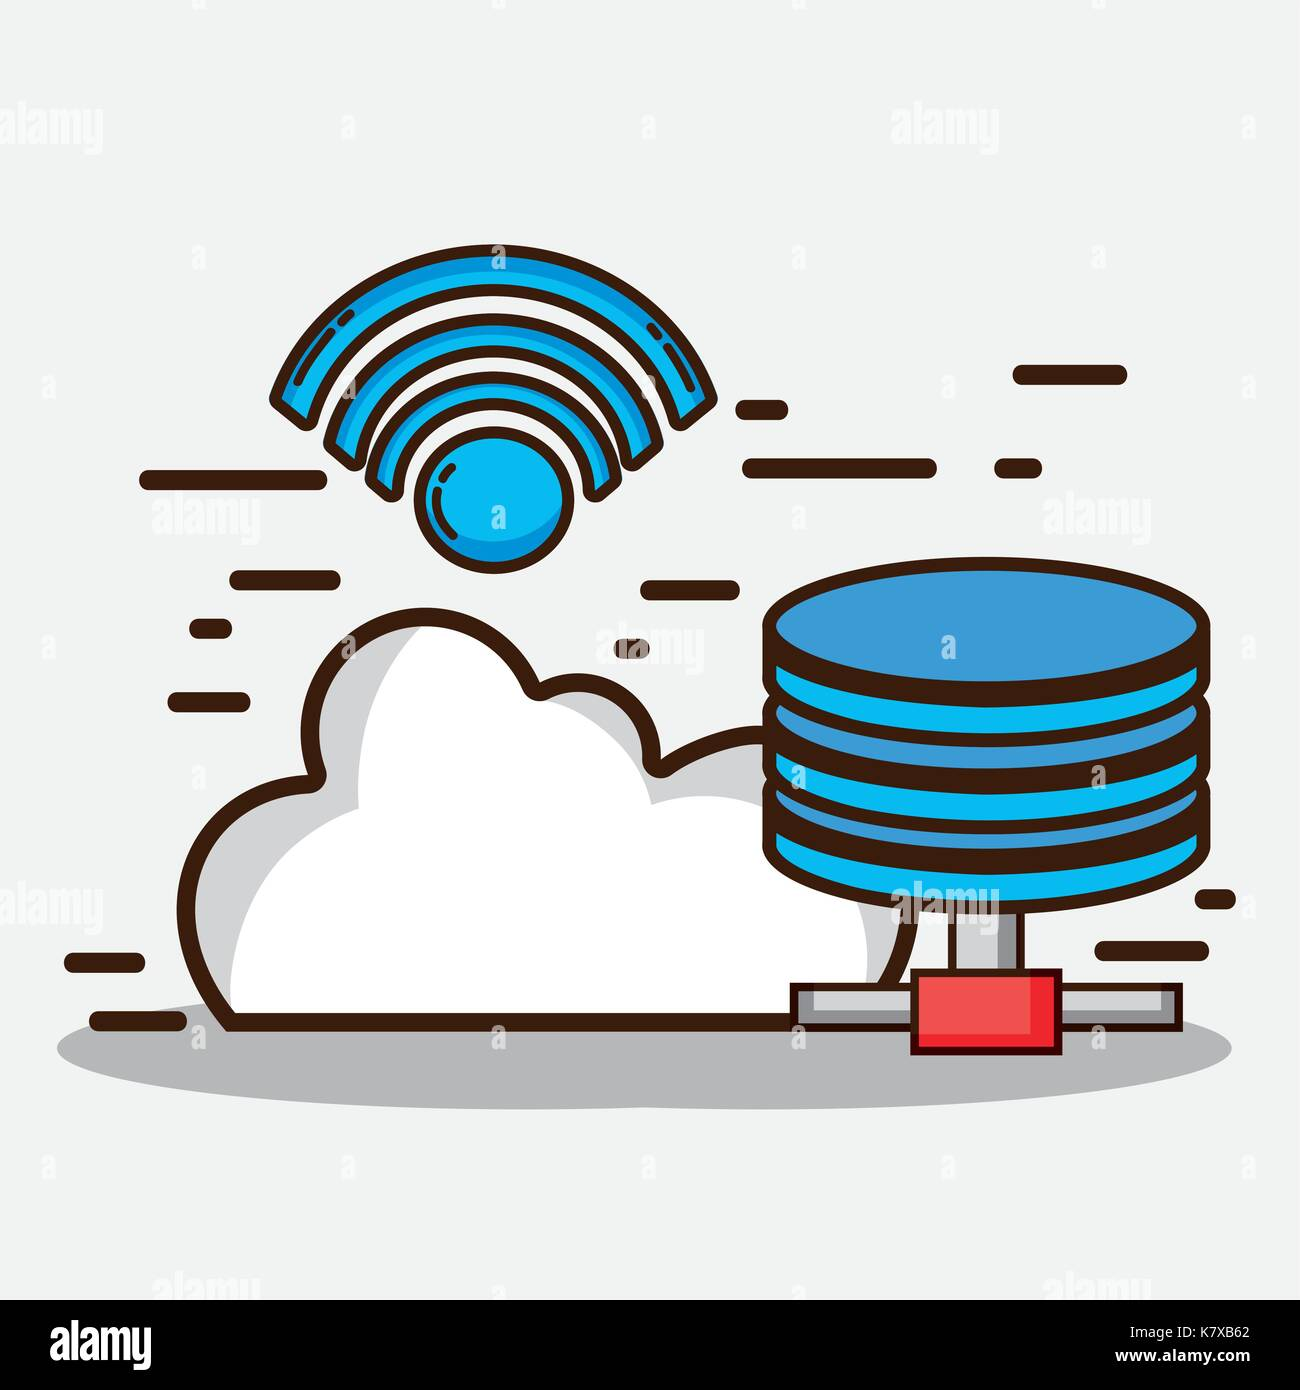 data center system service with information - Stock Image